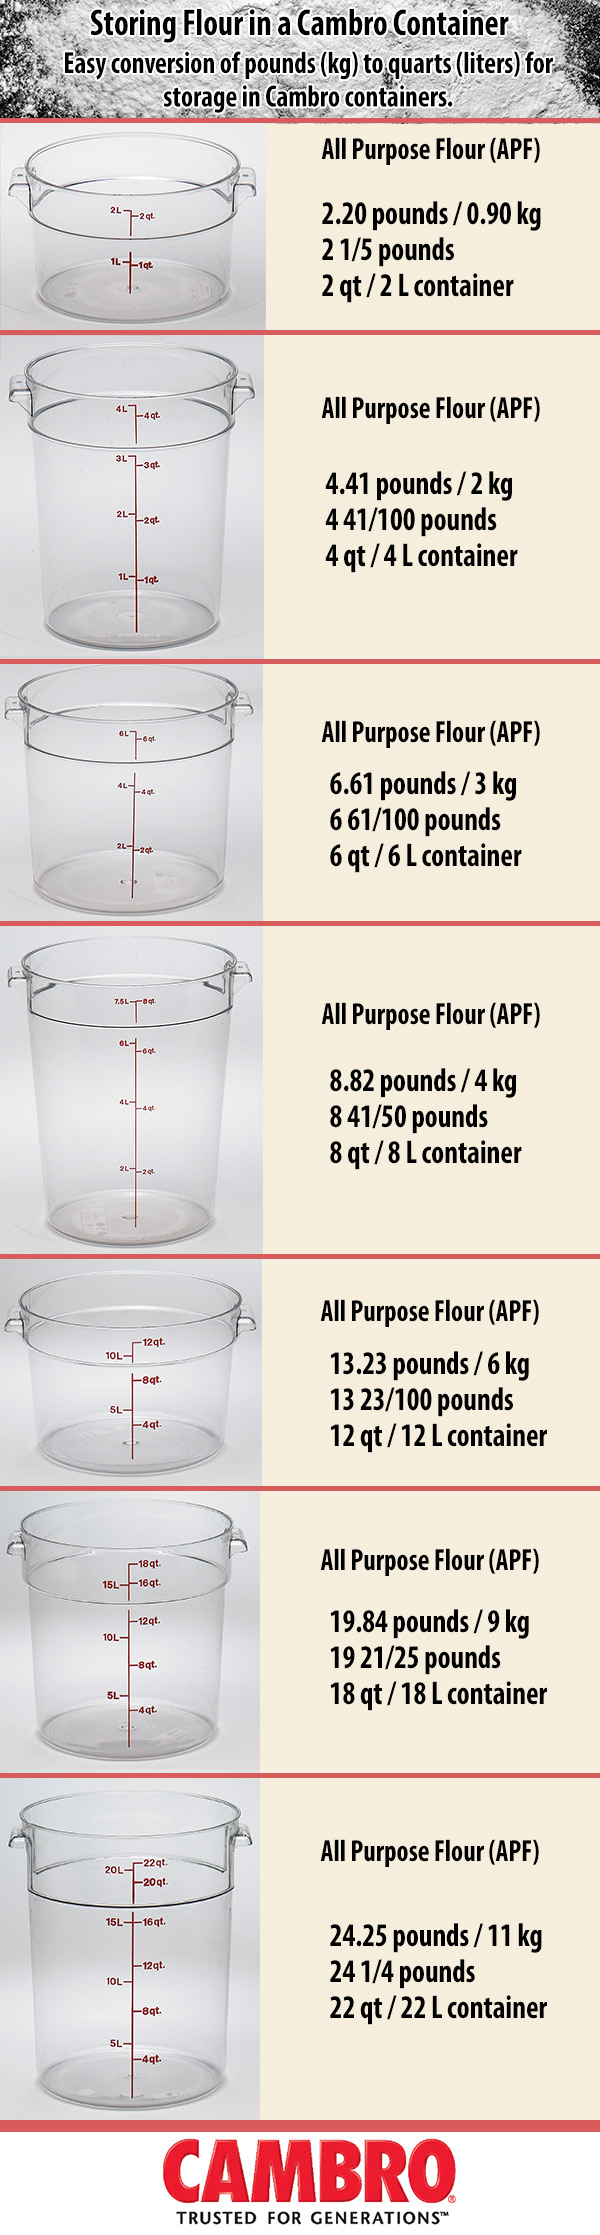 Pounds to Quarts Conversion - Cambro Containers - Flour